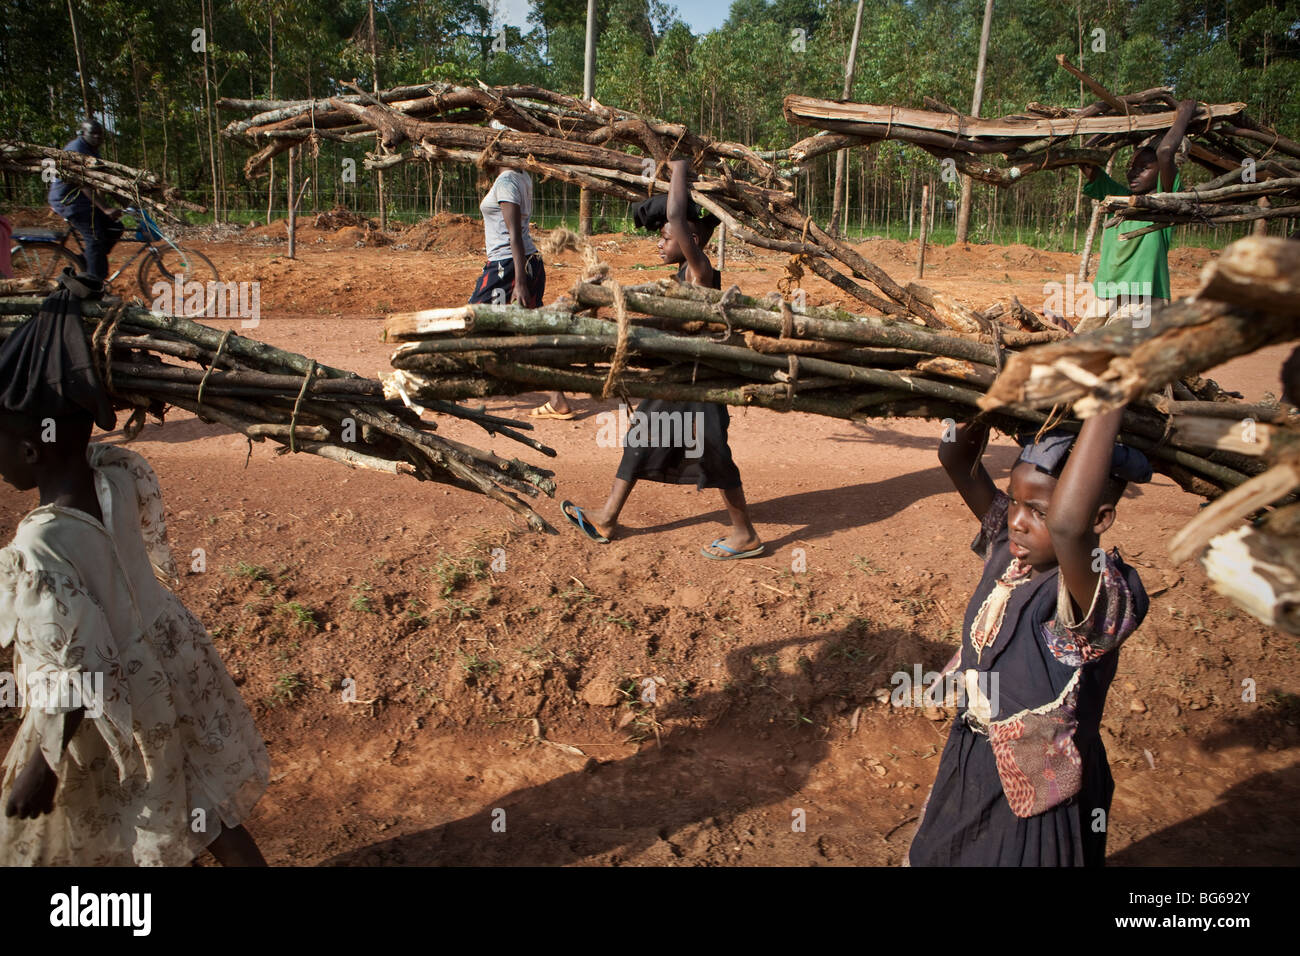 Children carry firewood down a road leading out of the Kakamega Forest Reserve in Western Kenya. - Stock Image